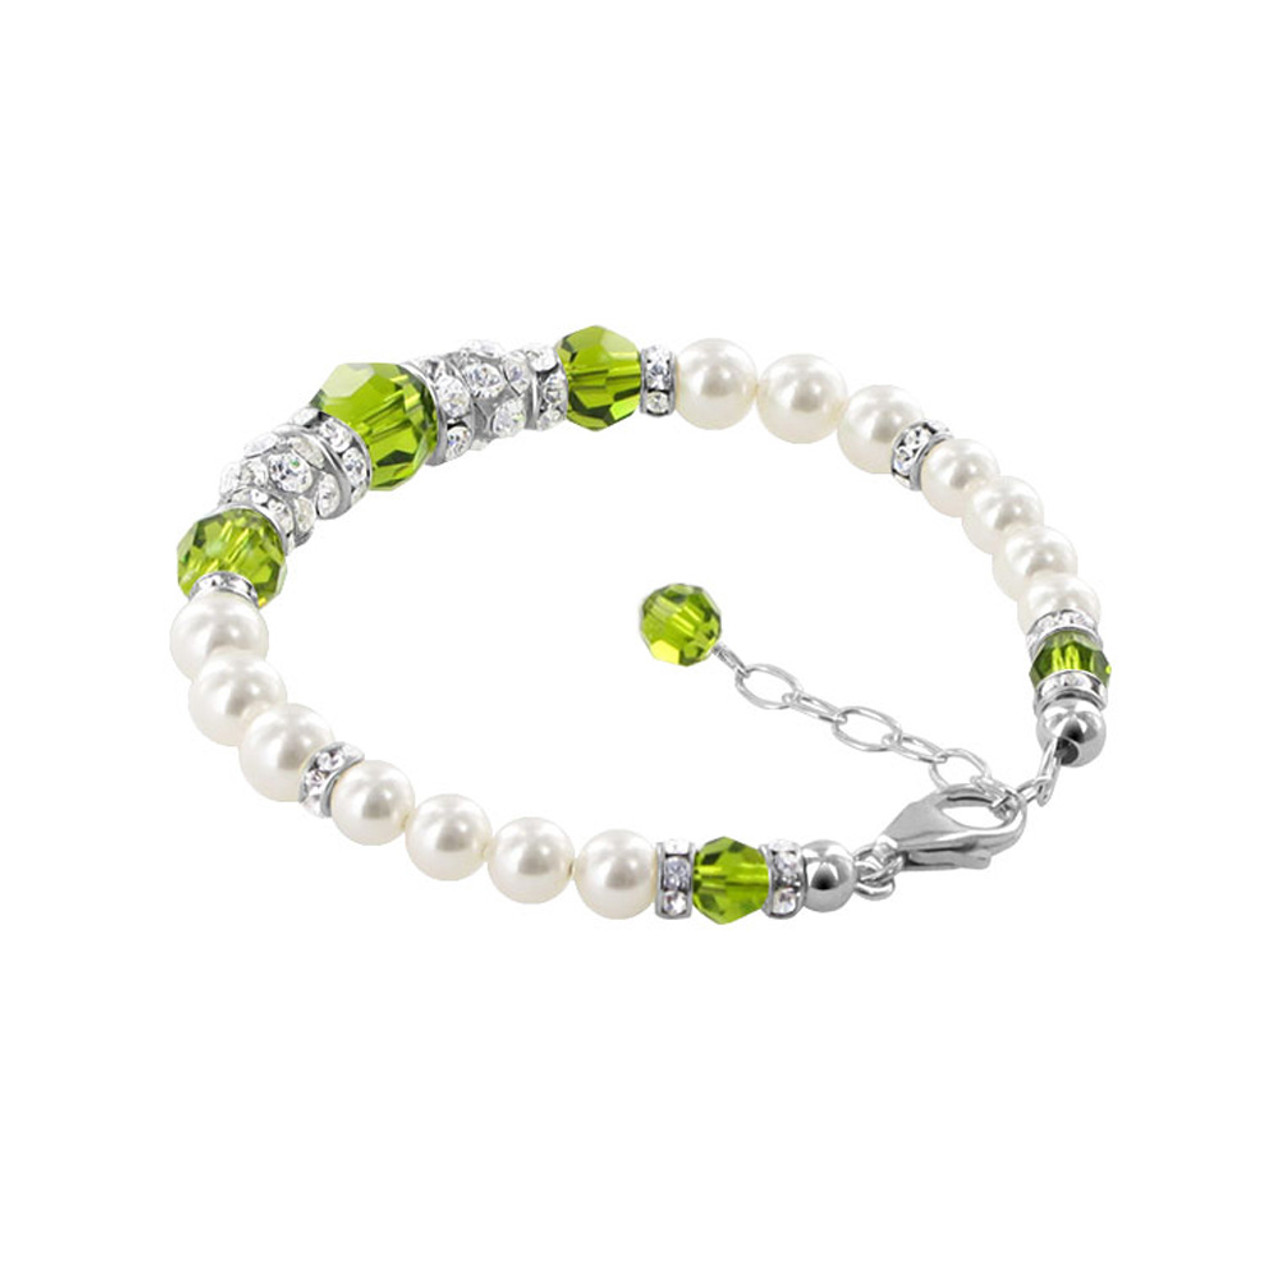 Simulated Pearls With Green Crystal 925 Silver Bracelet